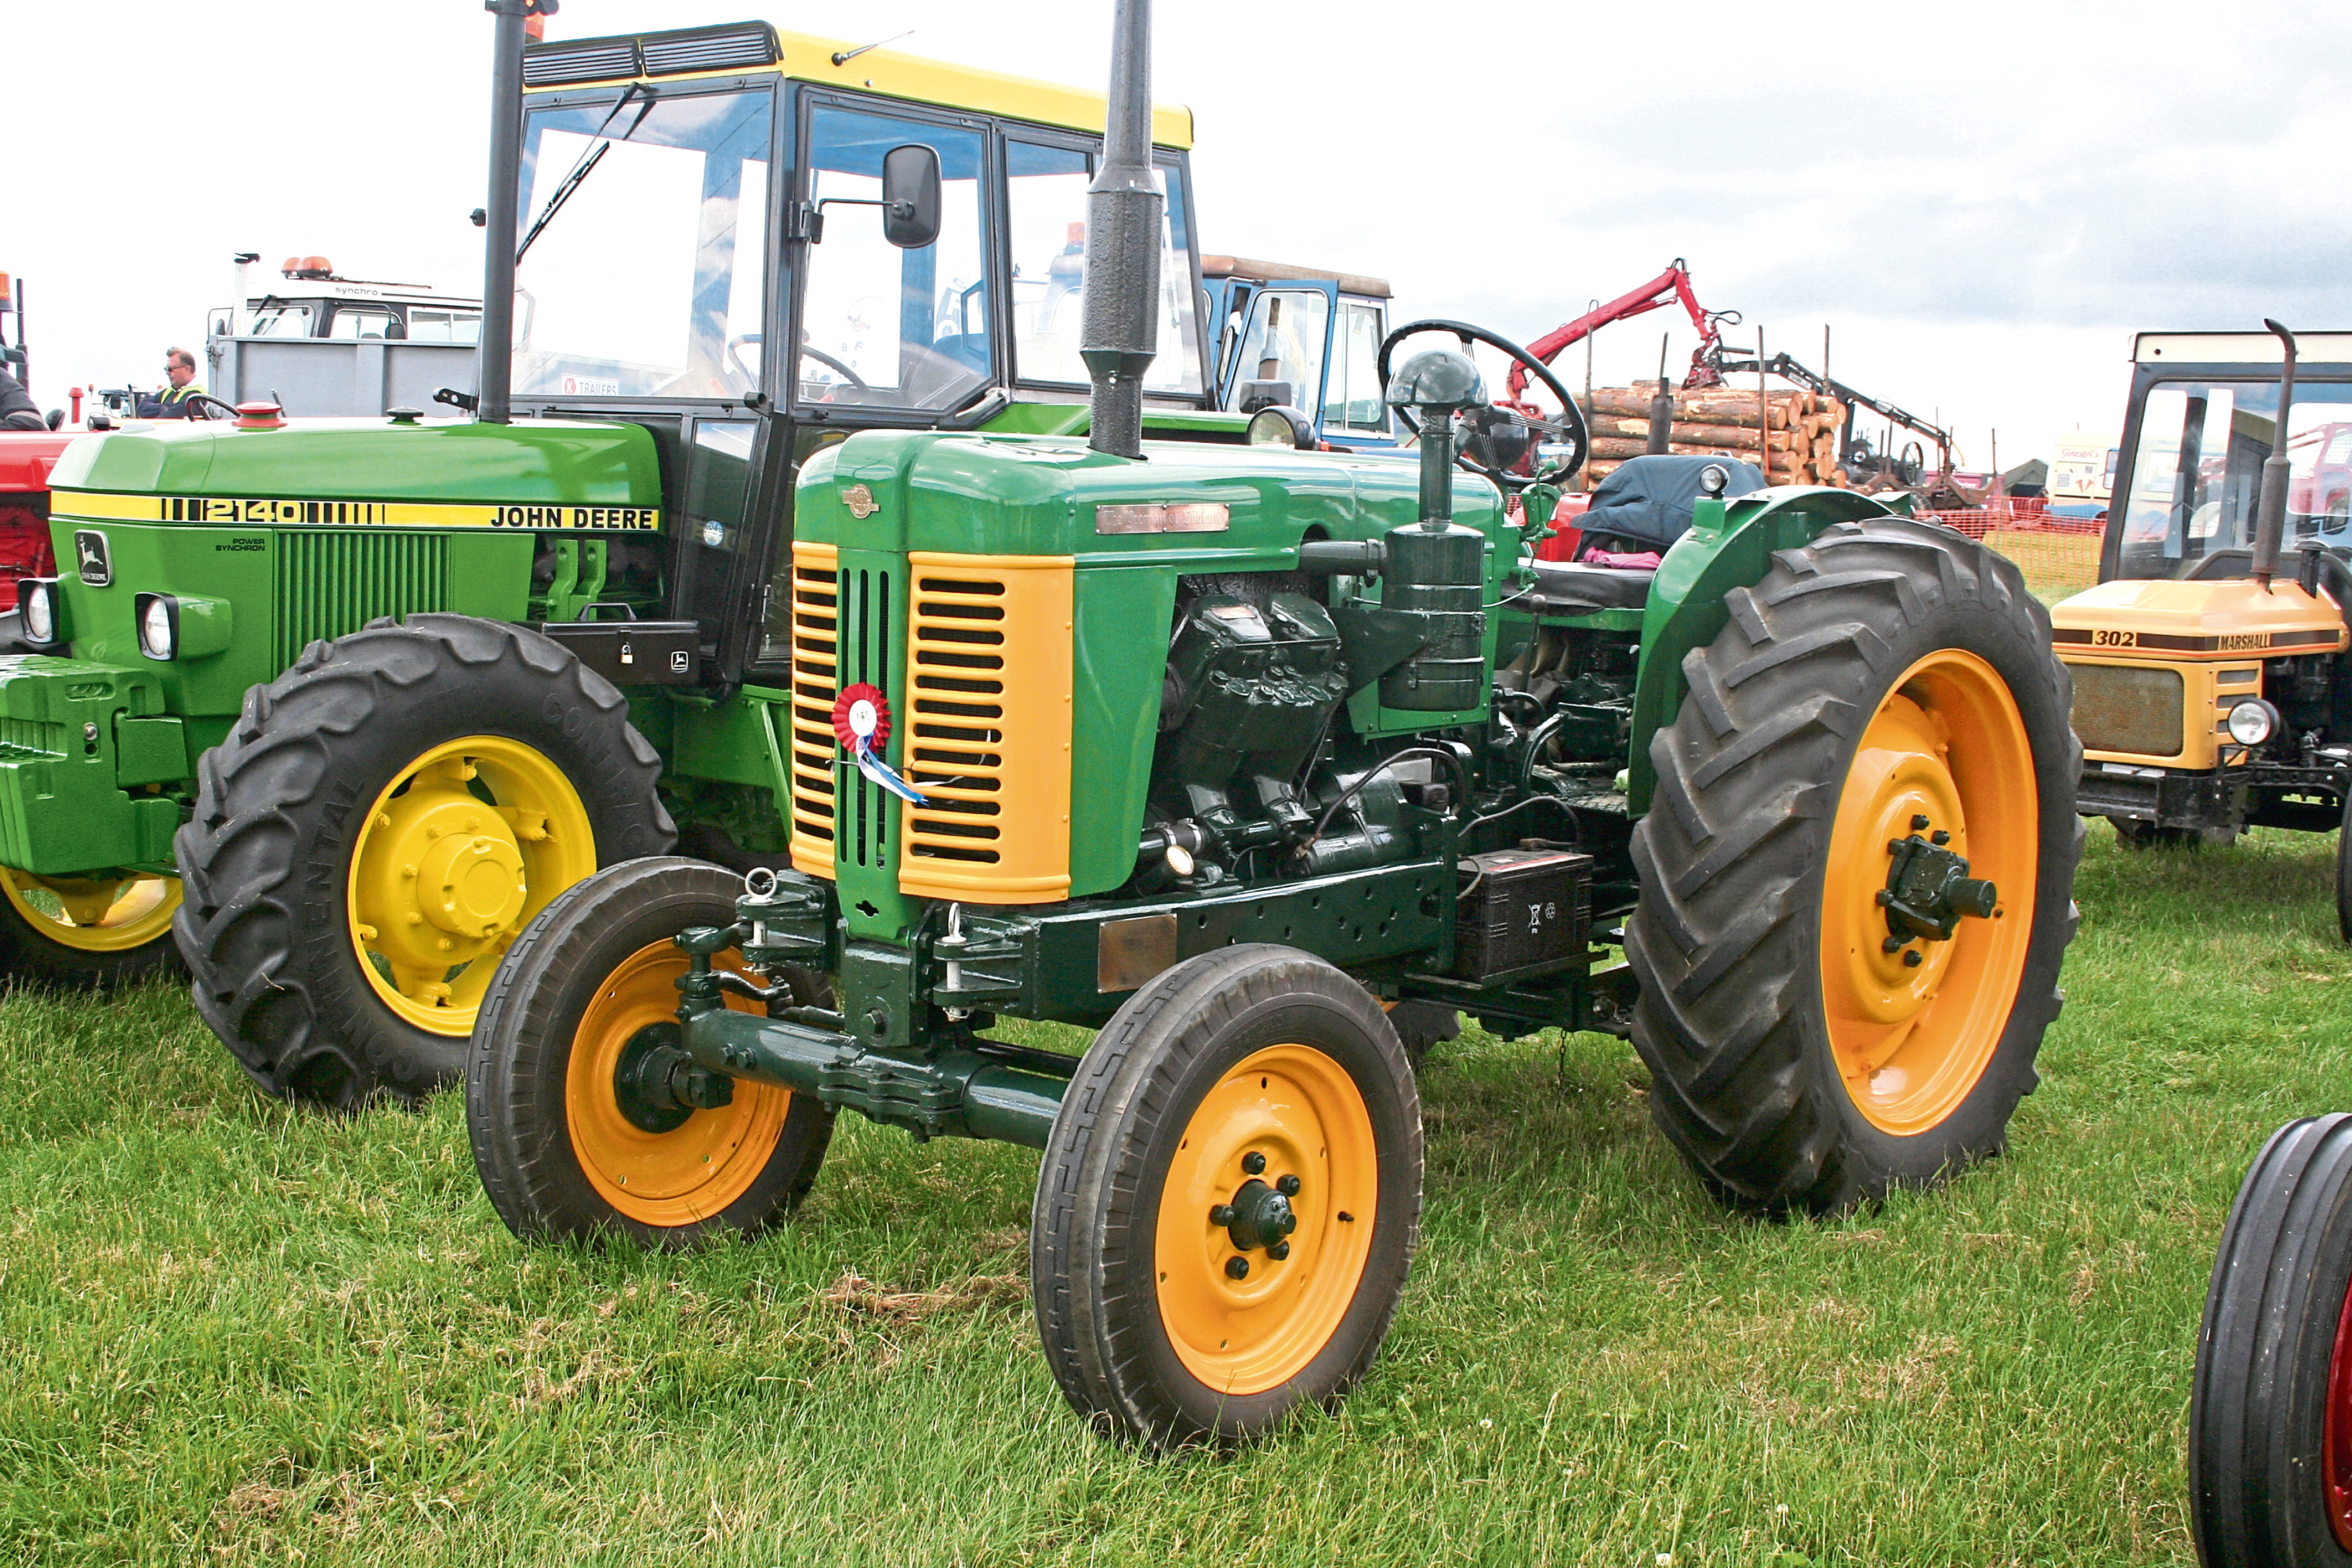 A 1950s Turner Yeoman of England, bearing the distinctive green and yellow colour scheme, stands next to a more modern John Deere model